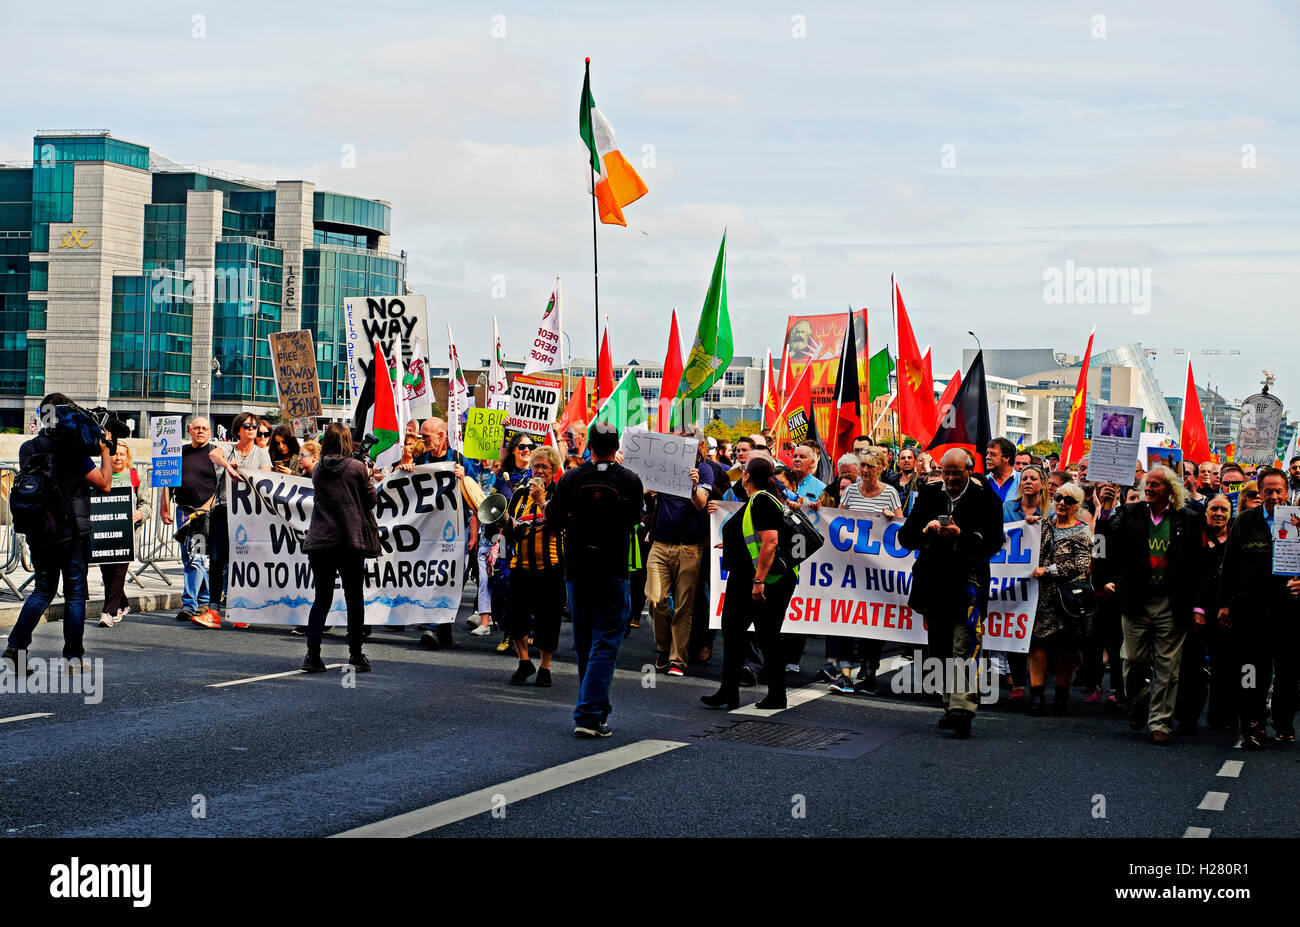 Water Charges protestors pause in their march through Dublin Ireland September 2016 - Stock Image